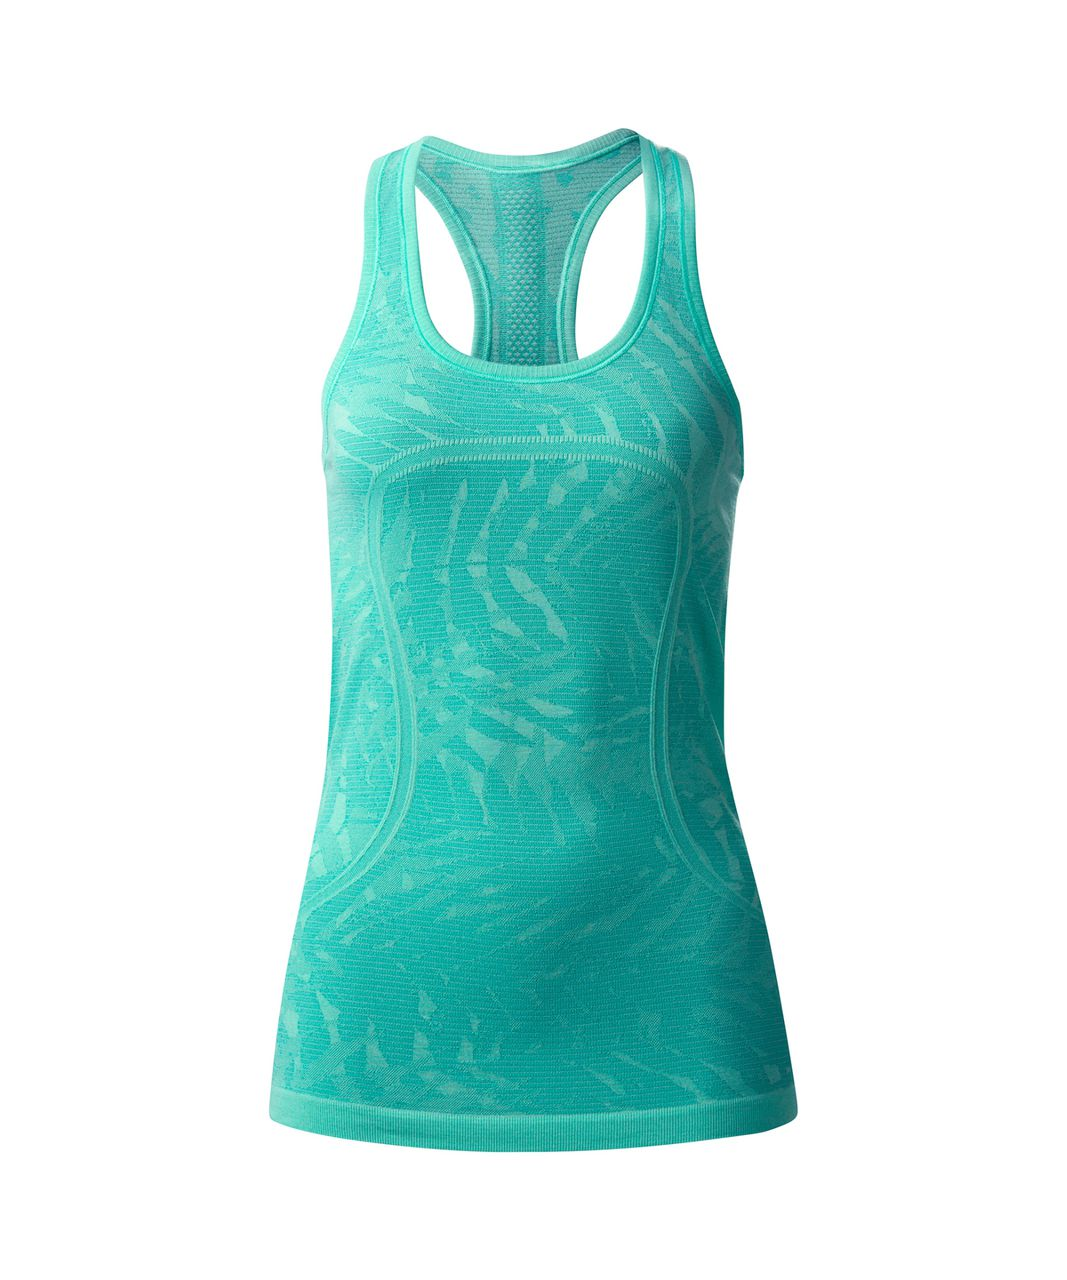 Lululemon Swiftly Tech Racerback - Heathered Bali Breeze (Print)